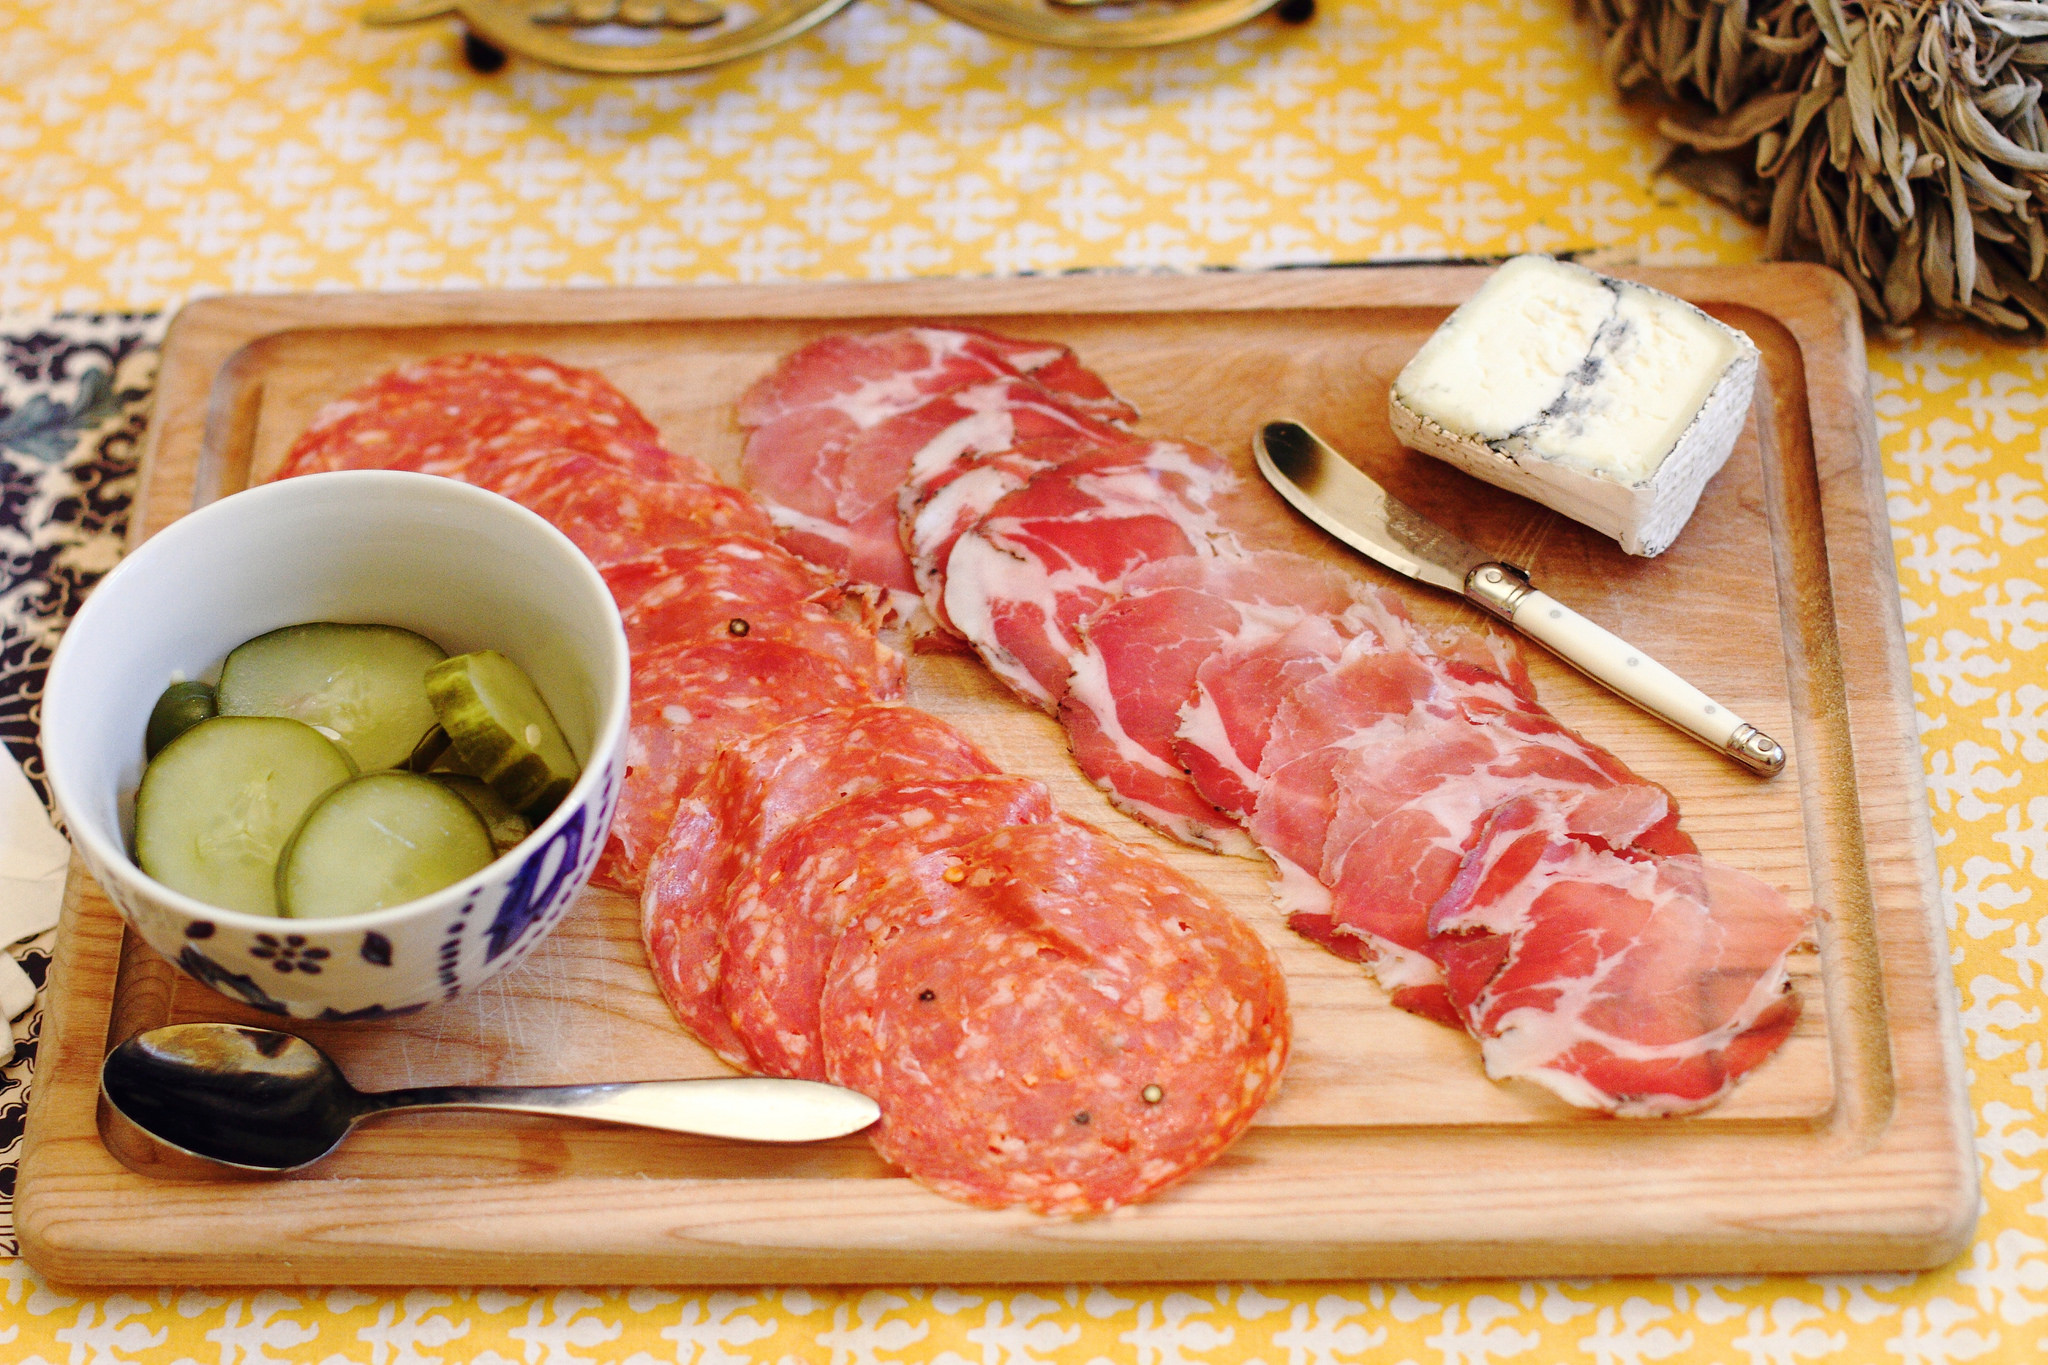 charcuterie and homemade pickles